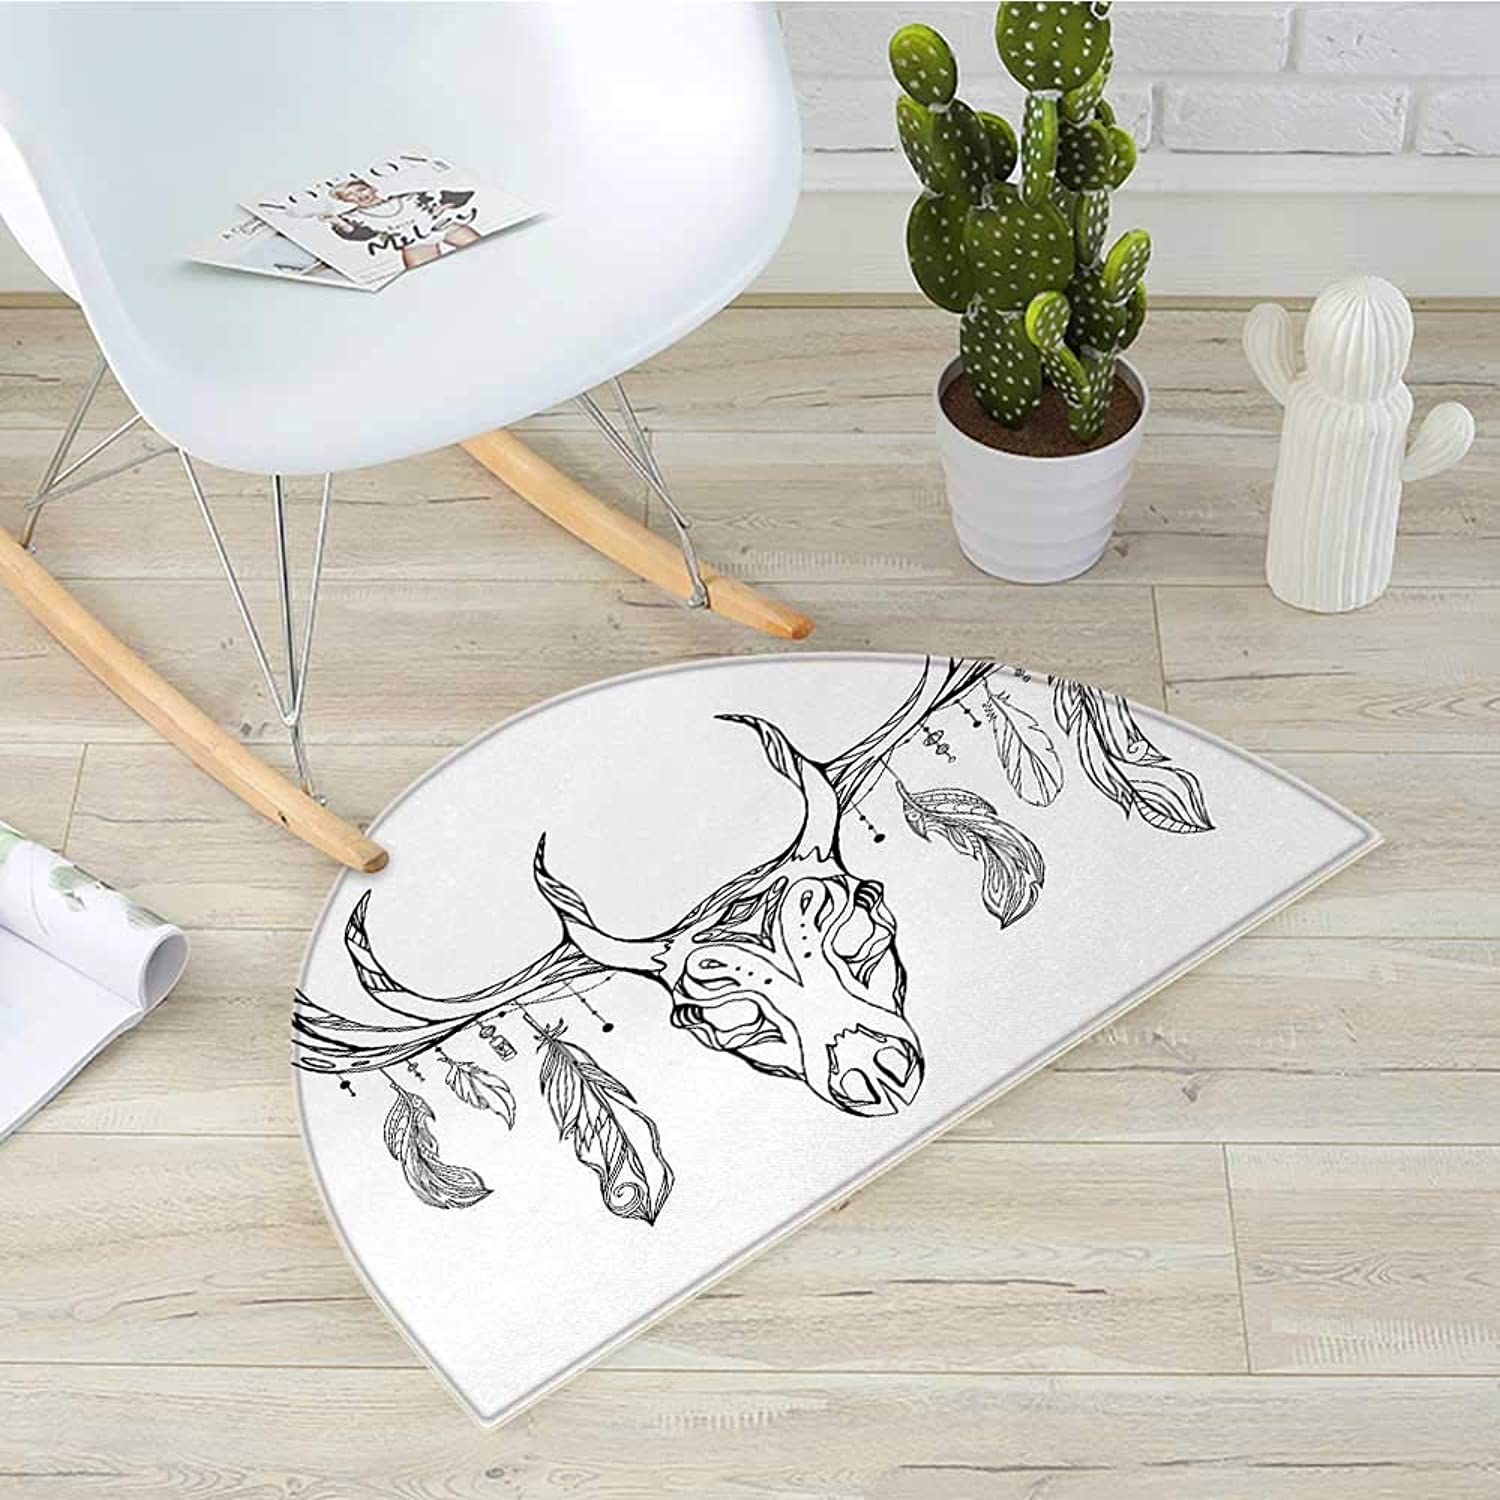 Antlers Semicircular CushionIllustration of a Deer Skull with Antlers and Feathers Boho Pattern Tribal Entry Door Mat H 39.3  xD 59  Charcoal Grey White